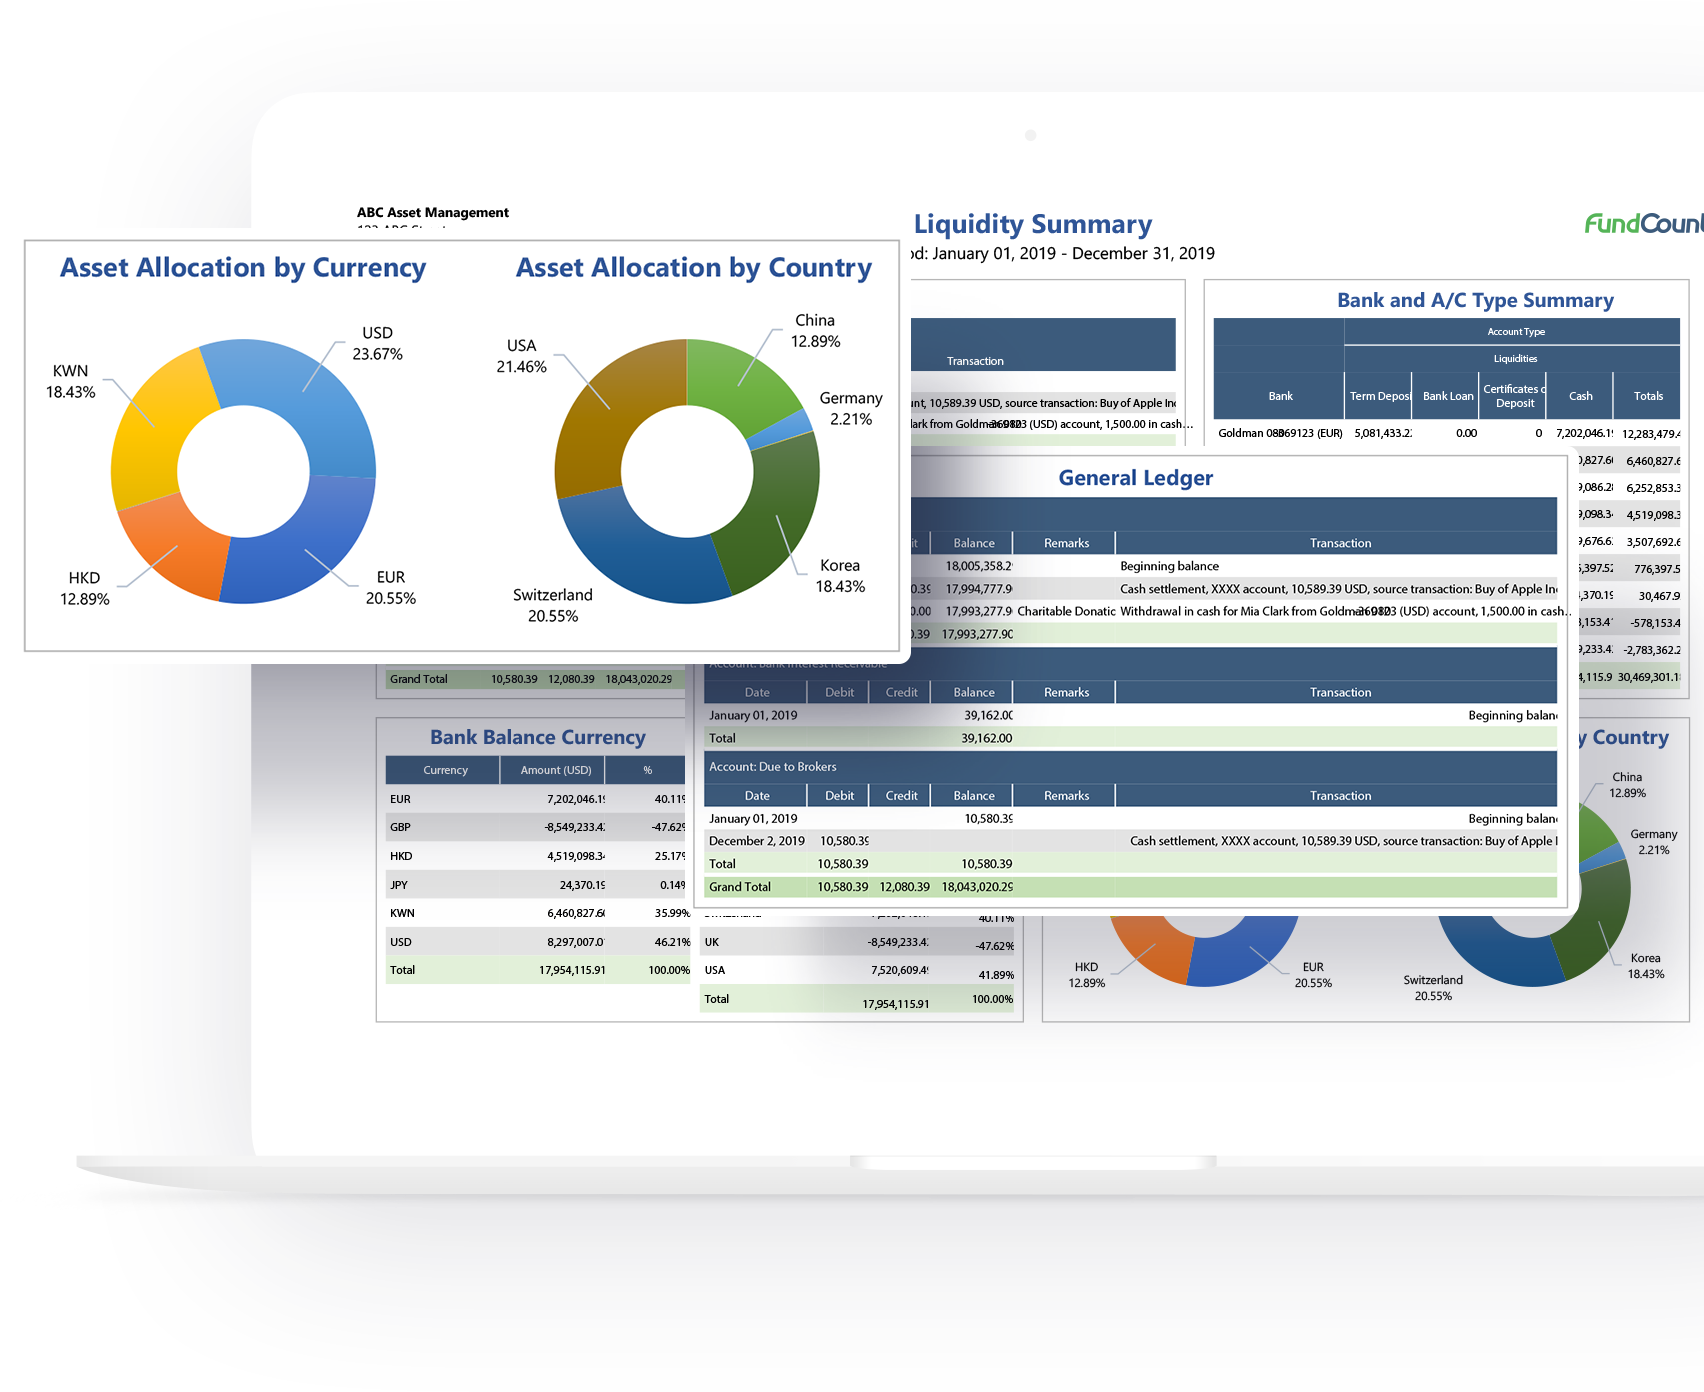 Complex investment accounting and reporting made simple. Aggregate, track and report investment details across family entities quickly and easily with family office software from FundCount.